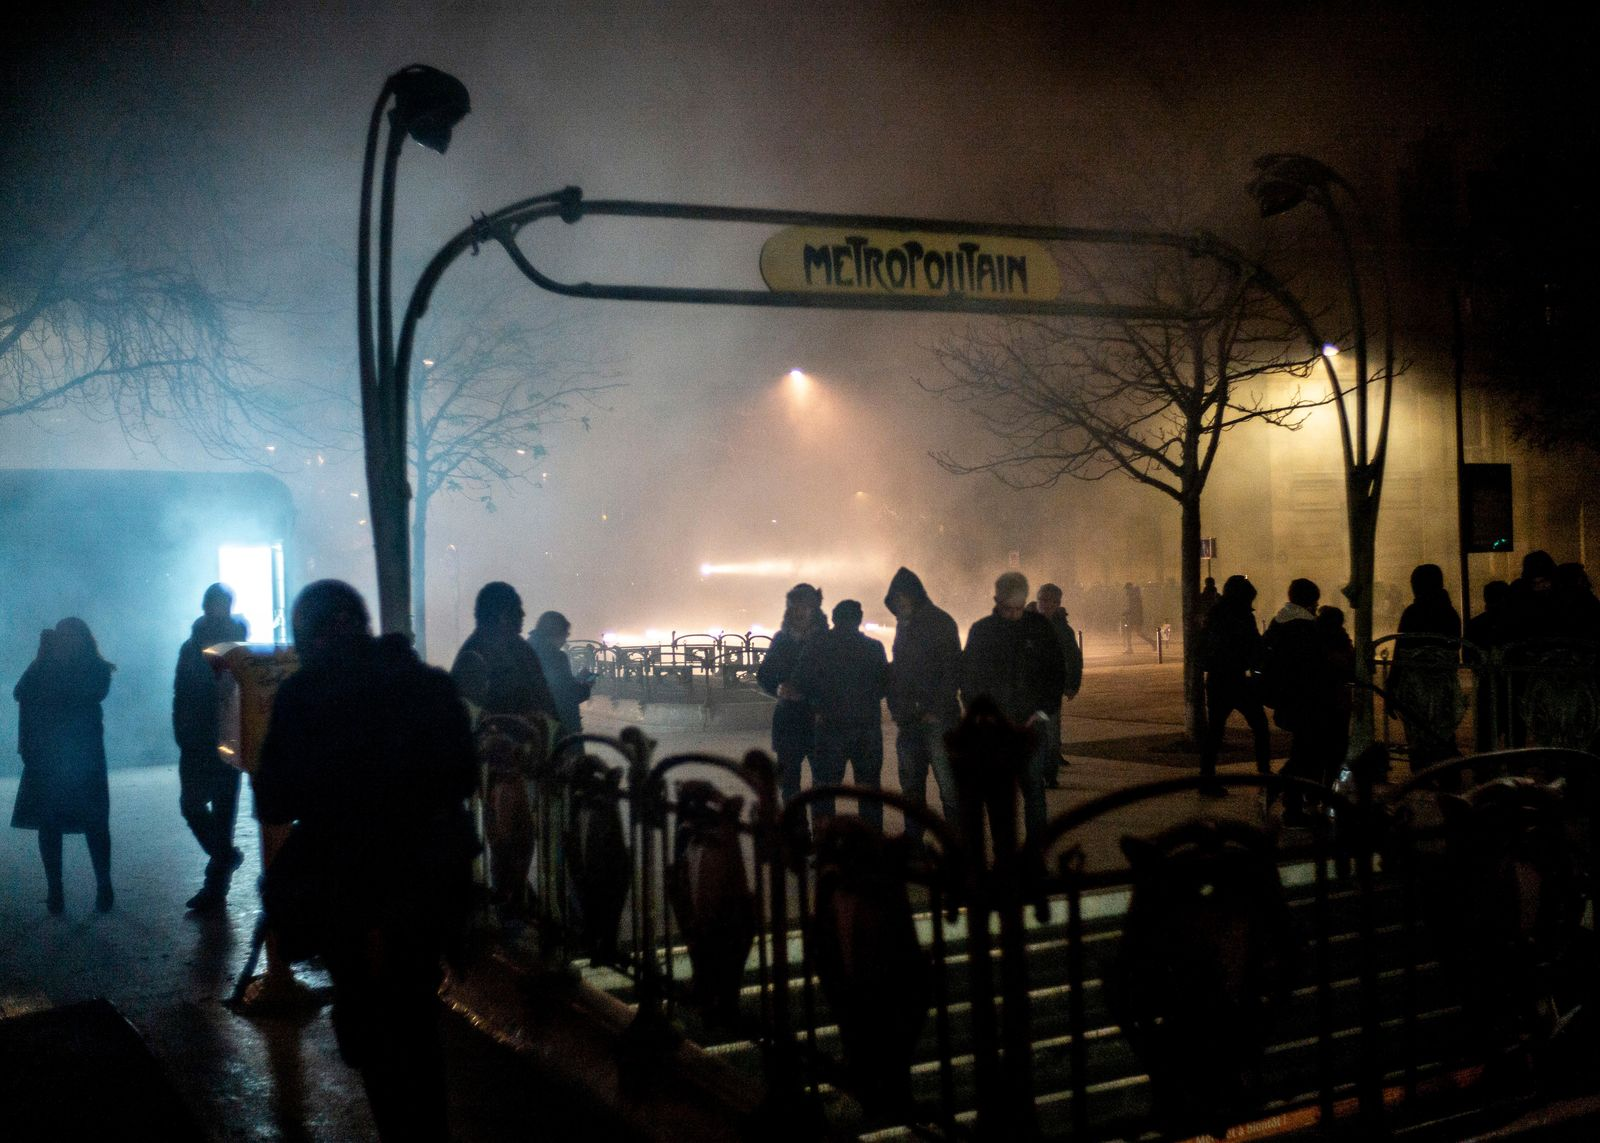 People stand next to the entrance of a metro station at the end of a demonstration in Paris, Thursday, Dec. 5, 2019. (AP Photo/Rafael Yaghobzadeh)